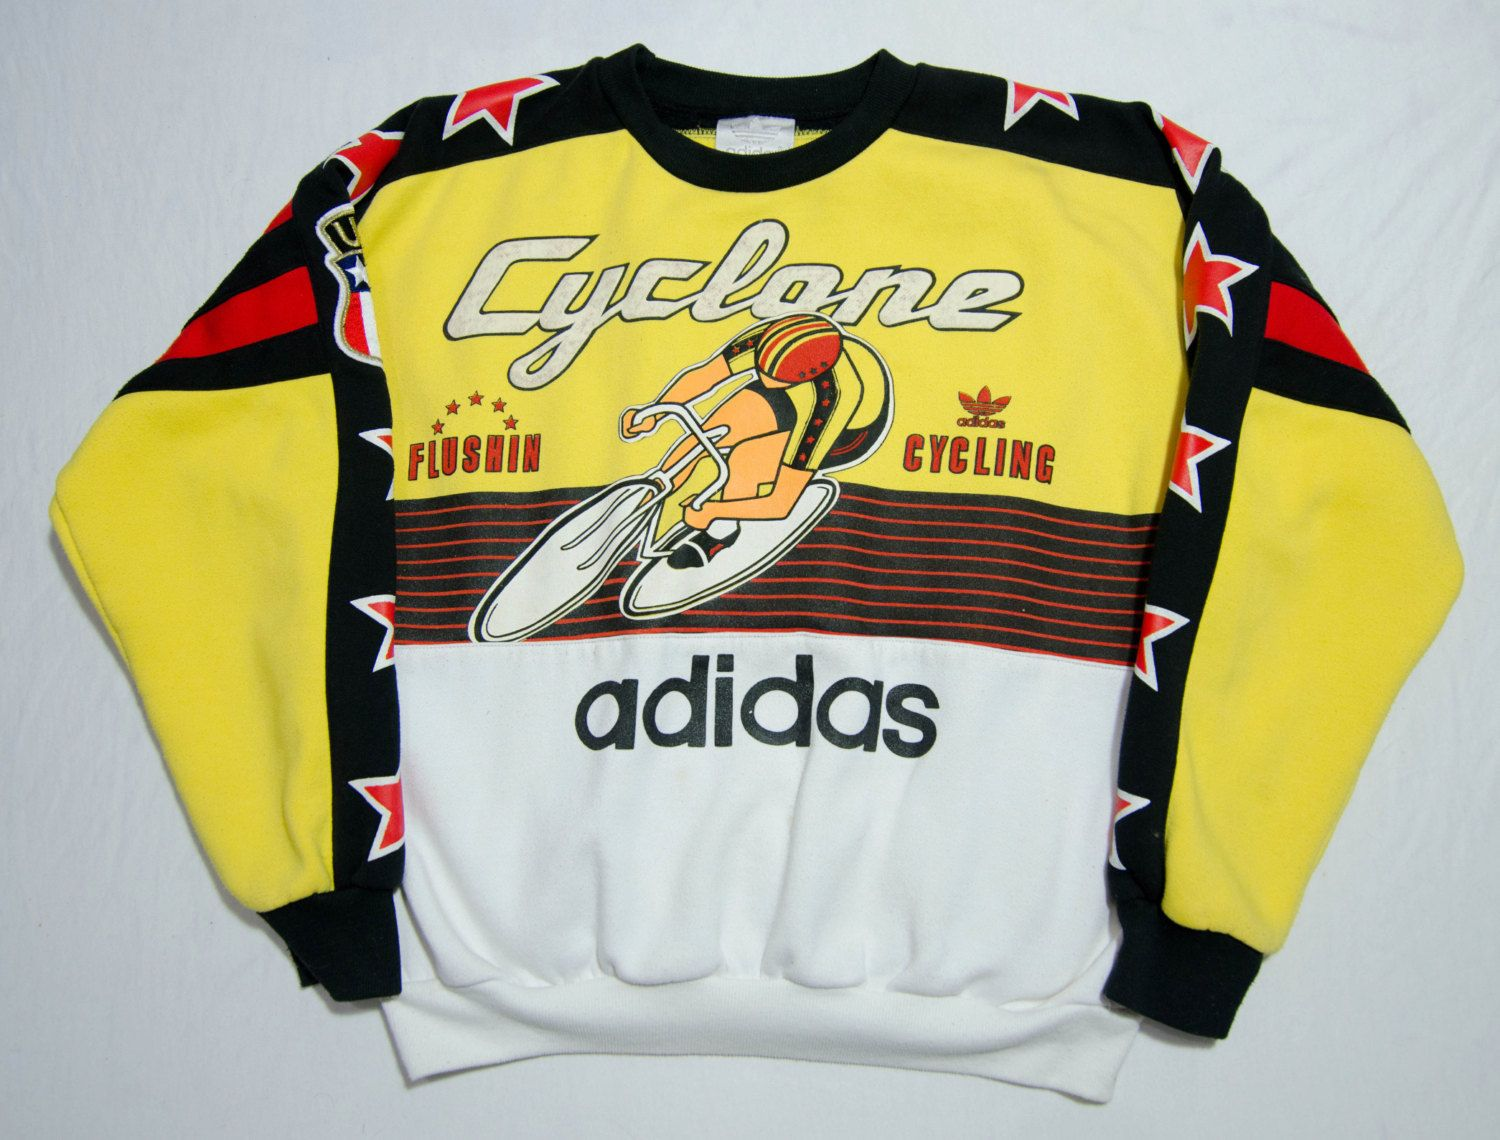 ee1f03bdb356 Vintage Adidas Cyclone Sweater by RagsOnRagsVintage on Etsy